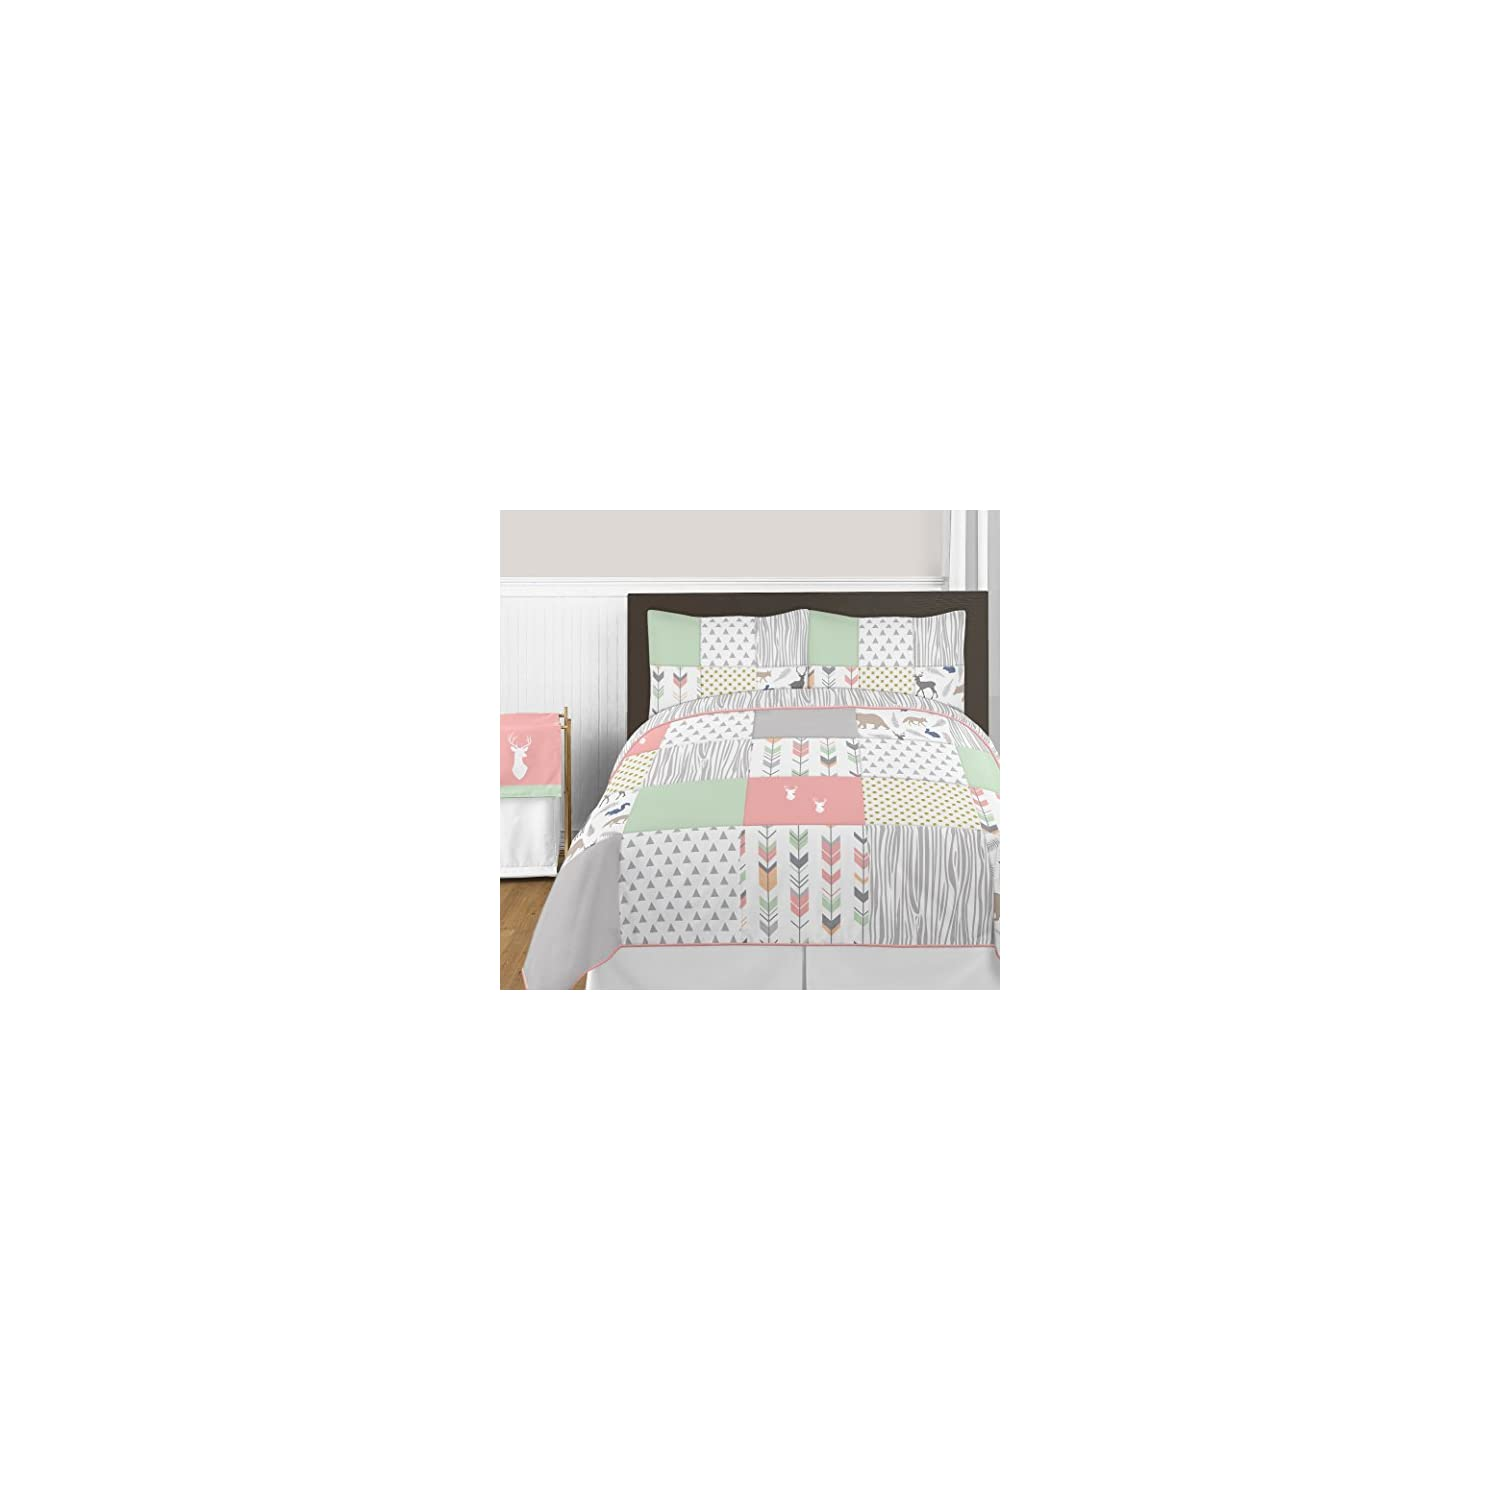 Sweet Jojo Designs Lamp Shade for Coral, Mint and Grey Woodsy Deer Girls Bedding Collection